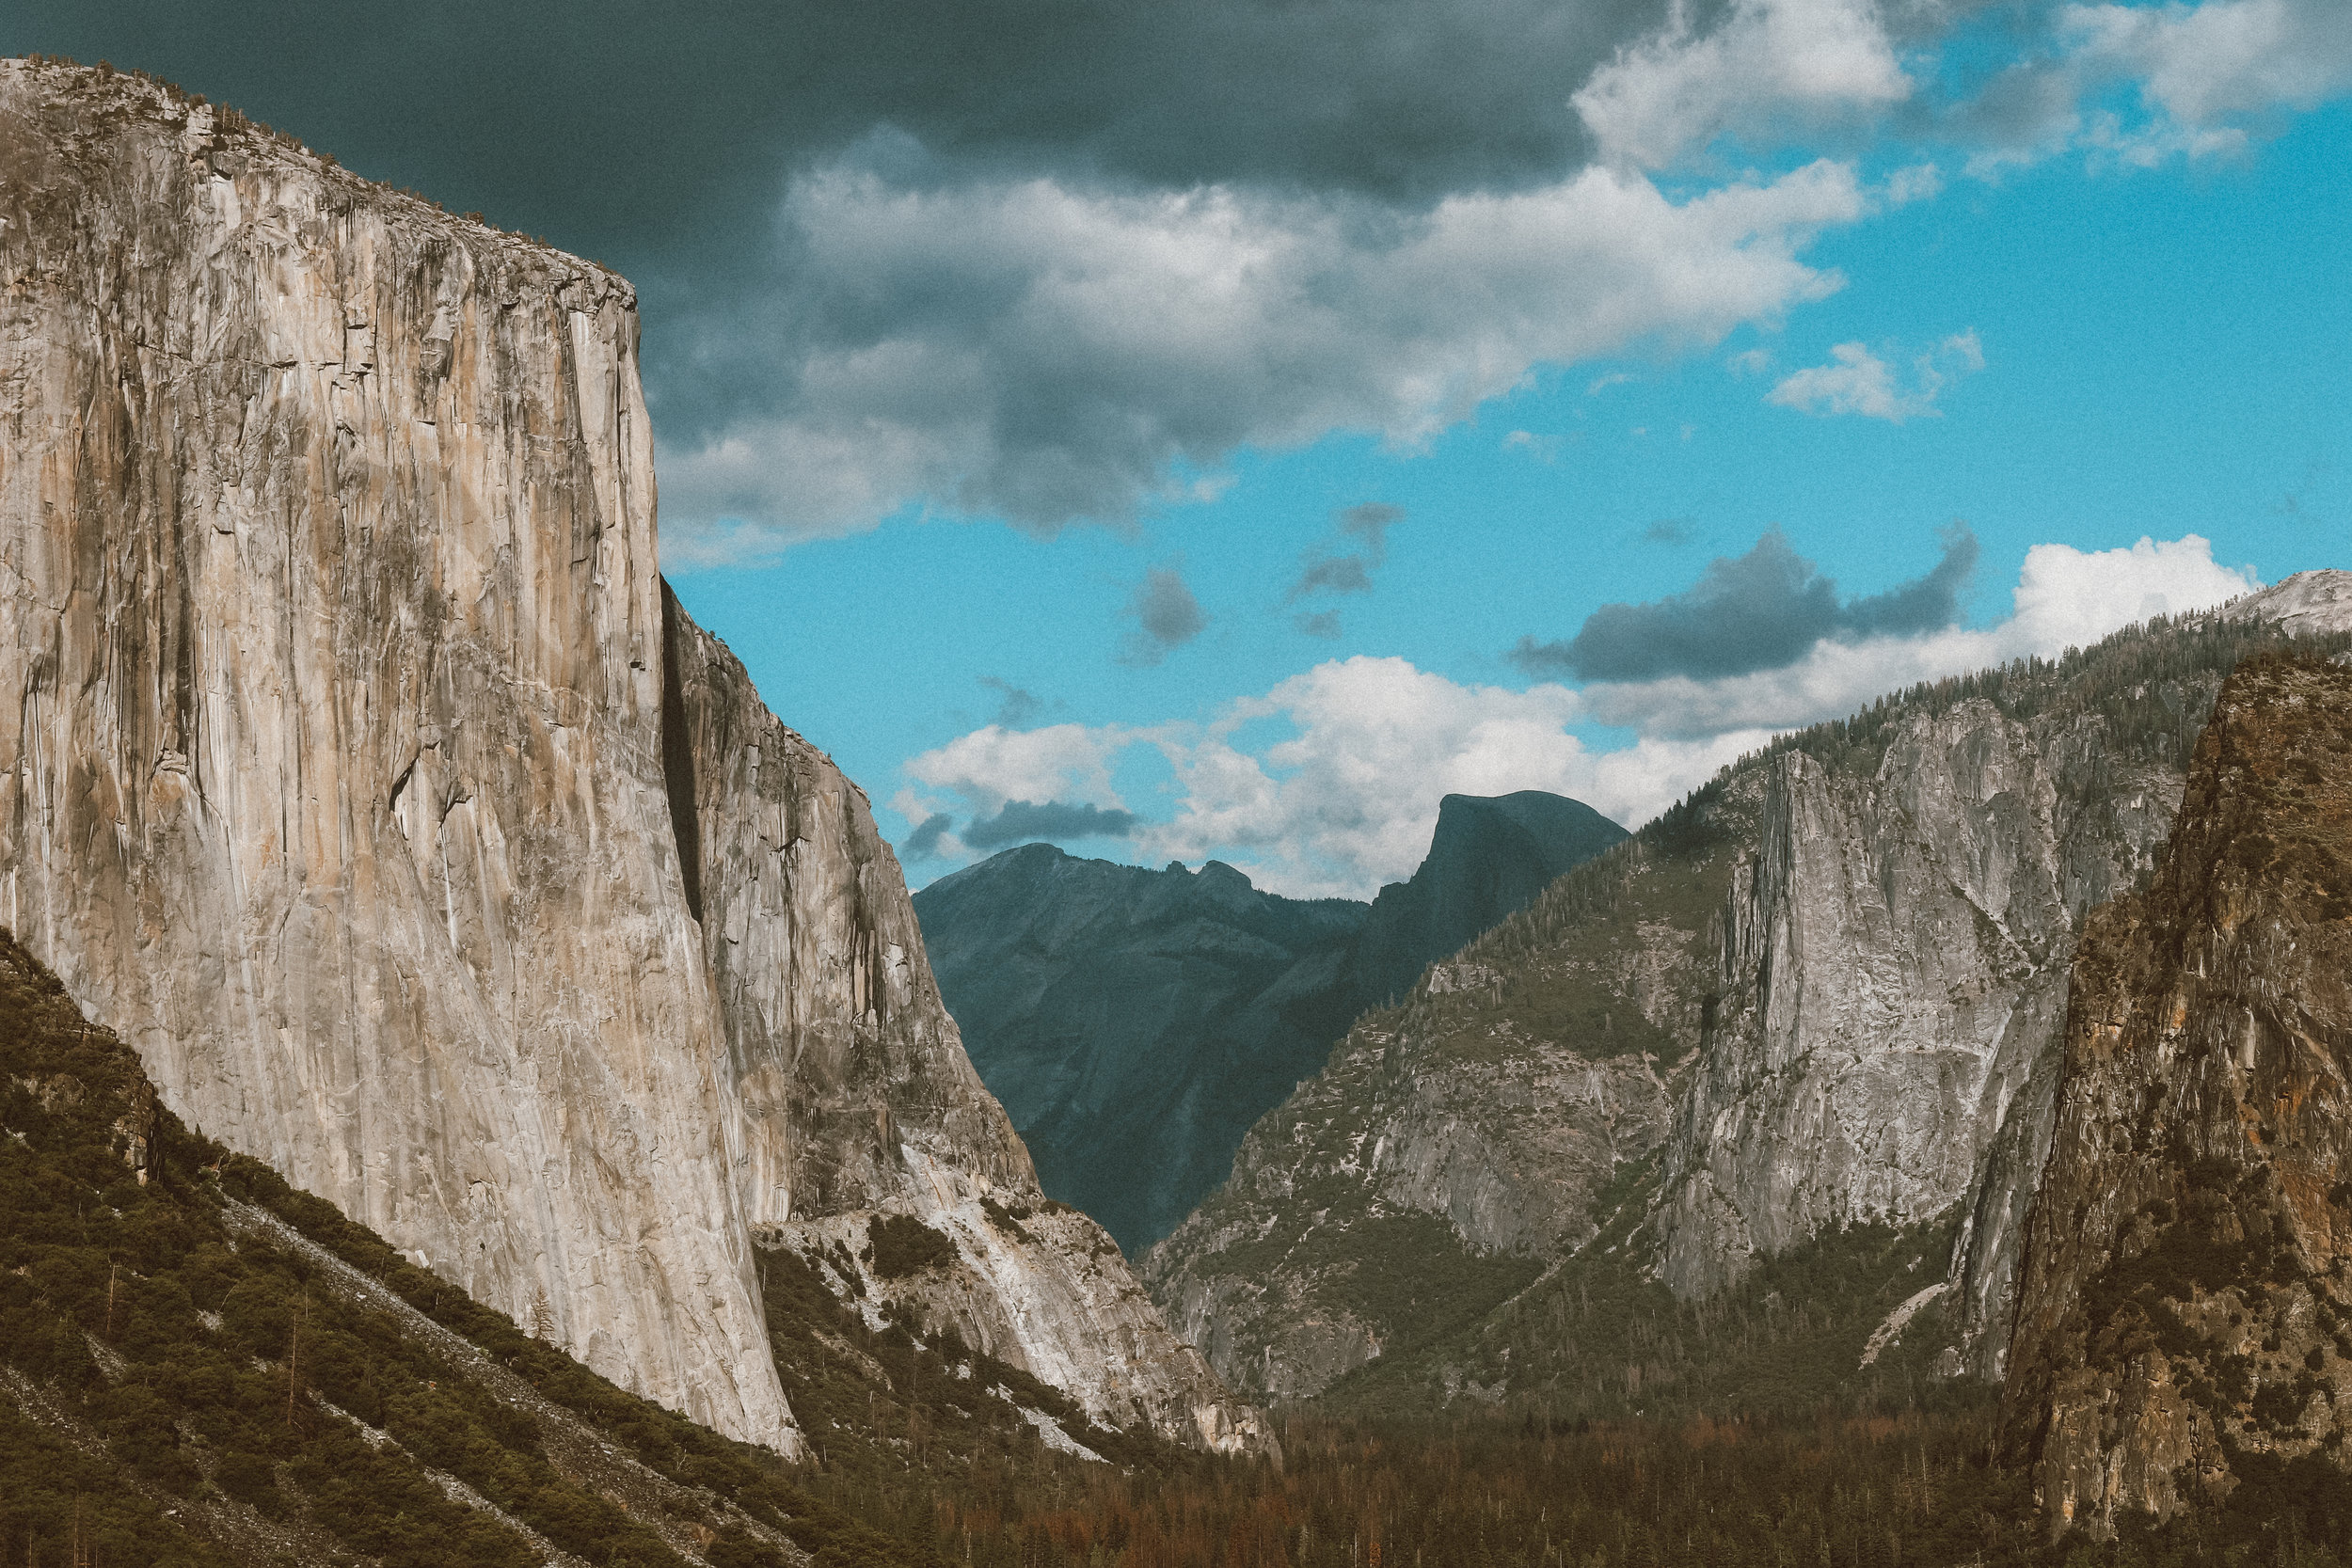 yosemite-national-park-el-capitan